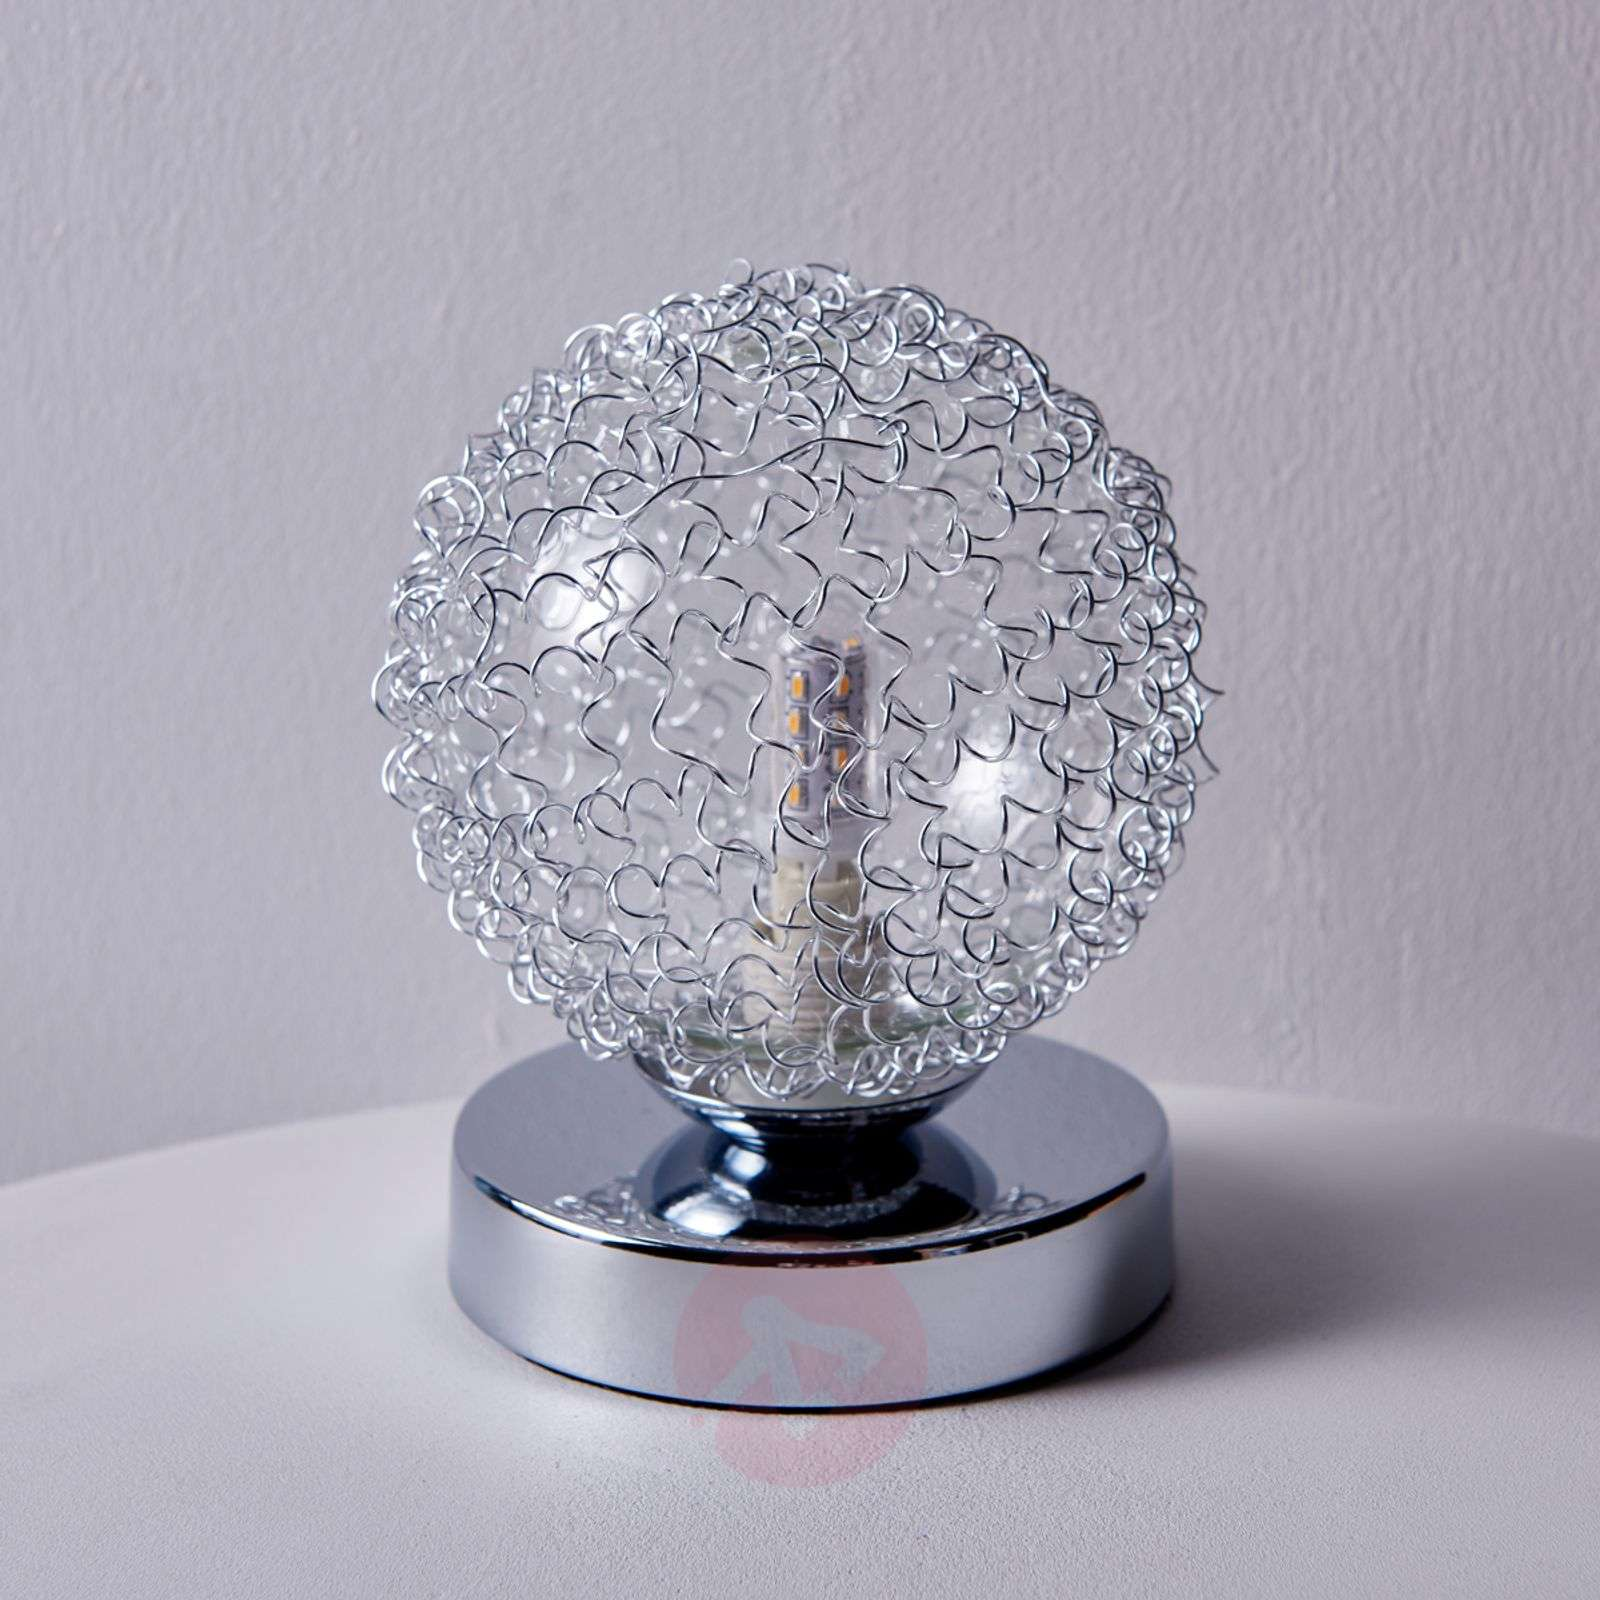 Small table lamp Ticino, G9 LED-9620785-03